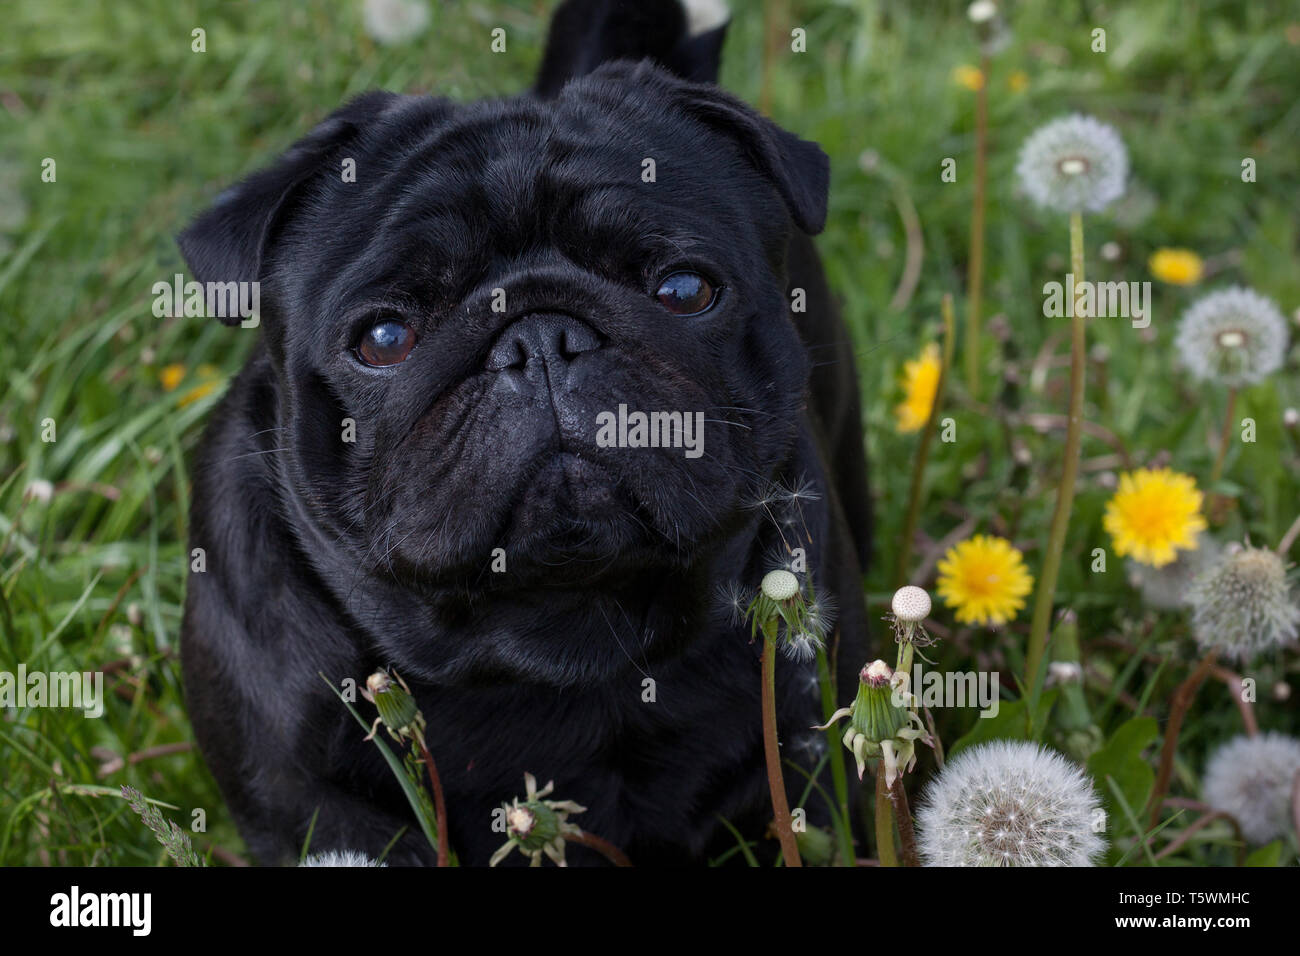 Chinese pug is standing on a blooming meadow. Dutch mastiff or mops. Close up. Pet animals. - Stock Image